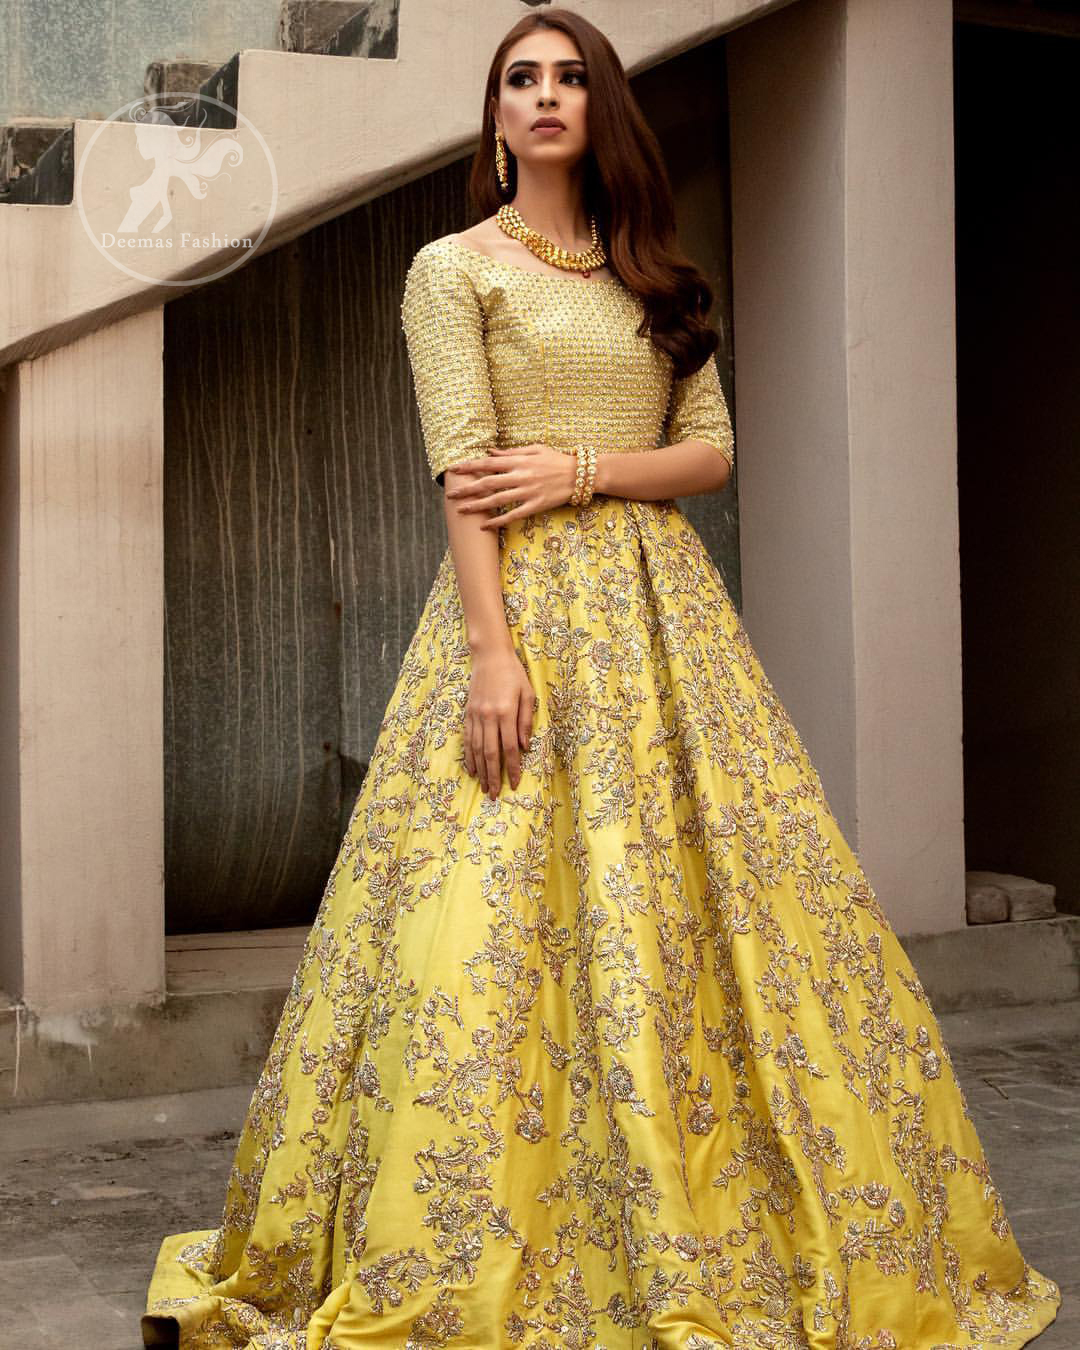 Tradition meets modernity. Exhibit elegance in this yellow blouse lehengha enhanced with kora and dabka embroidery adorned with Swarovski crystals and zardozi is perfect ensemble for mehendi. The outfit is coordinated with tissue dupatta with hand embroidered borders on all four sides and zardozi sequins work on the ground. It comes with raw silk fully embroidered lehengha.